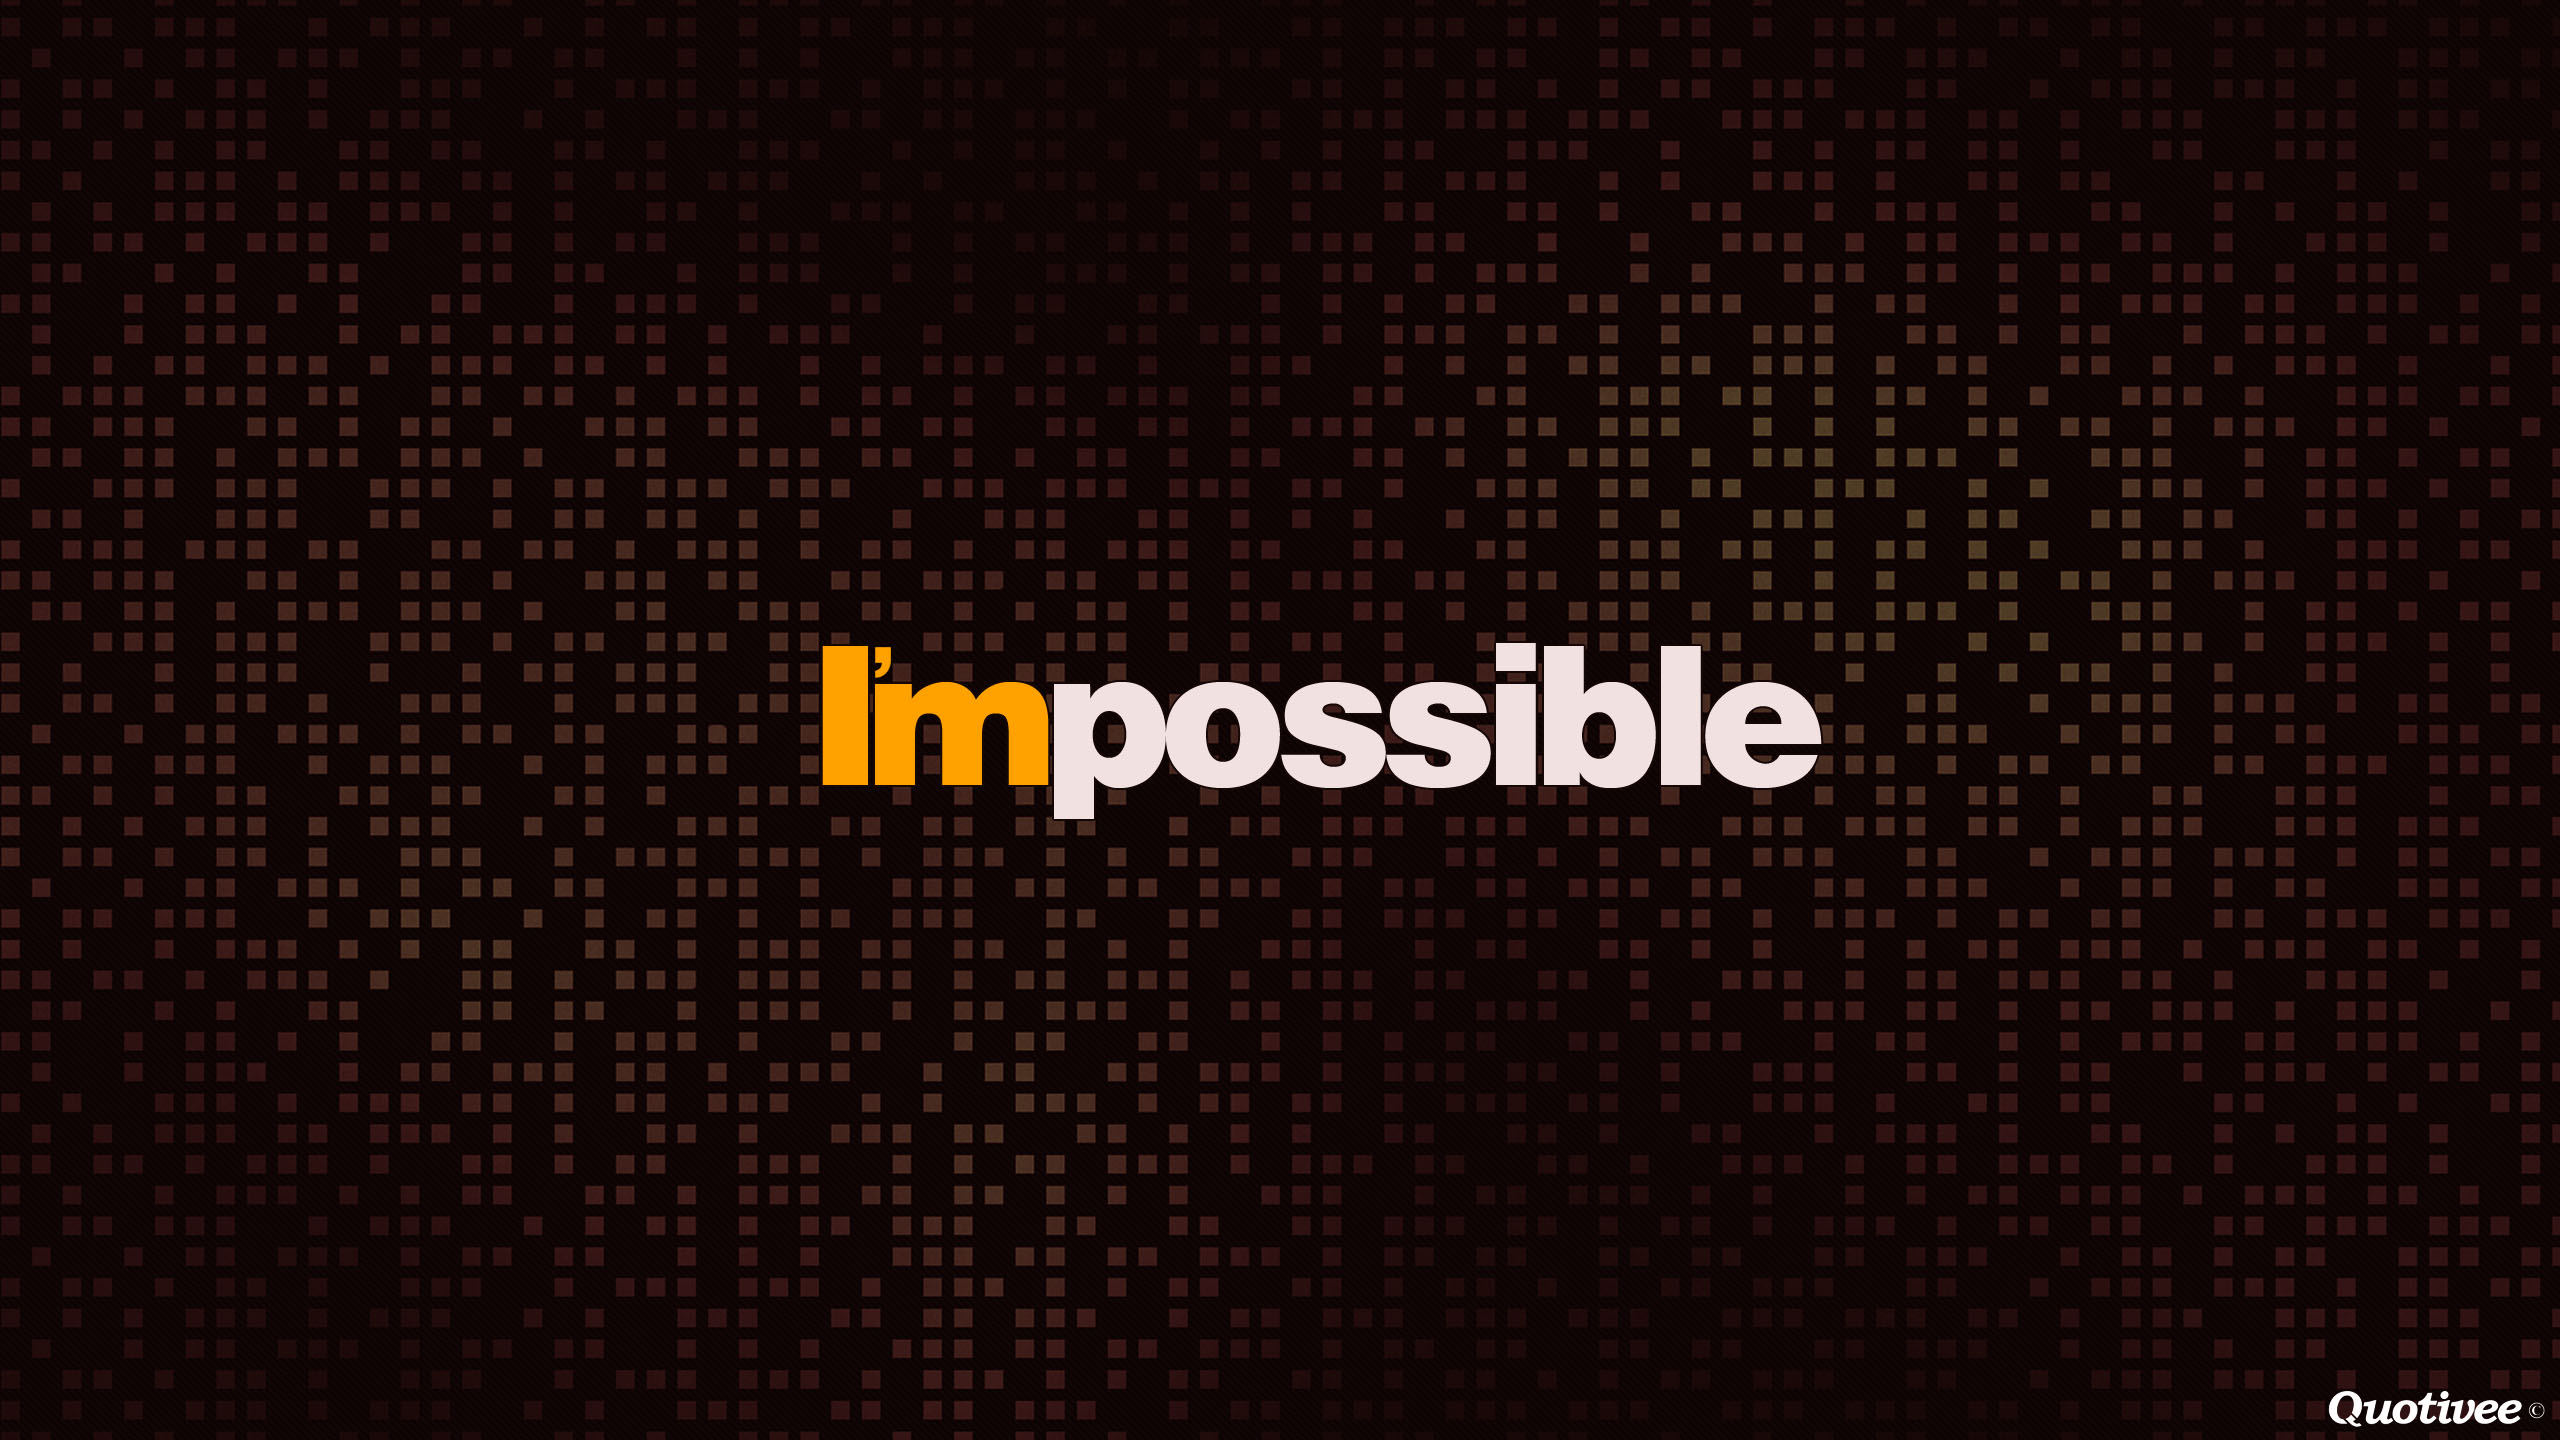 Don Draper Quote Wallpapers I M Possible Inspirational Quotes Quotivee